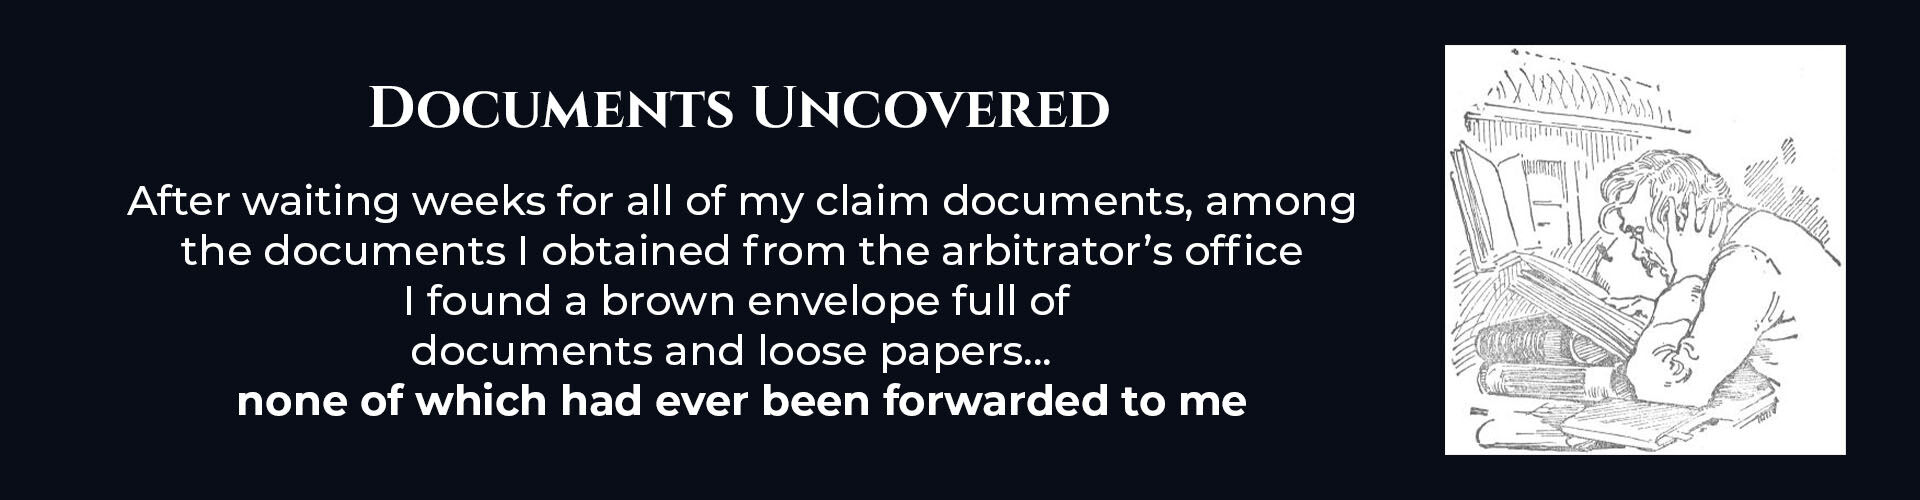 Absent Justice - Documents Uncovered